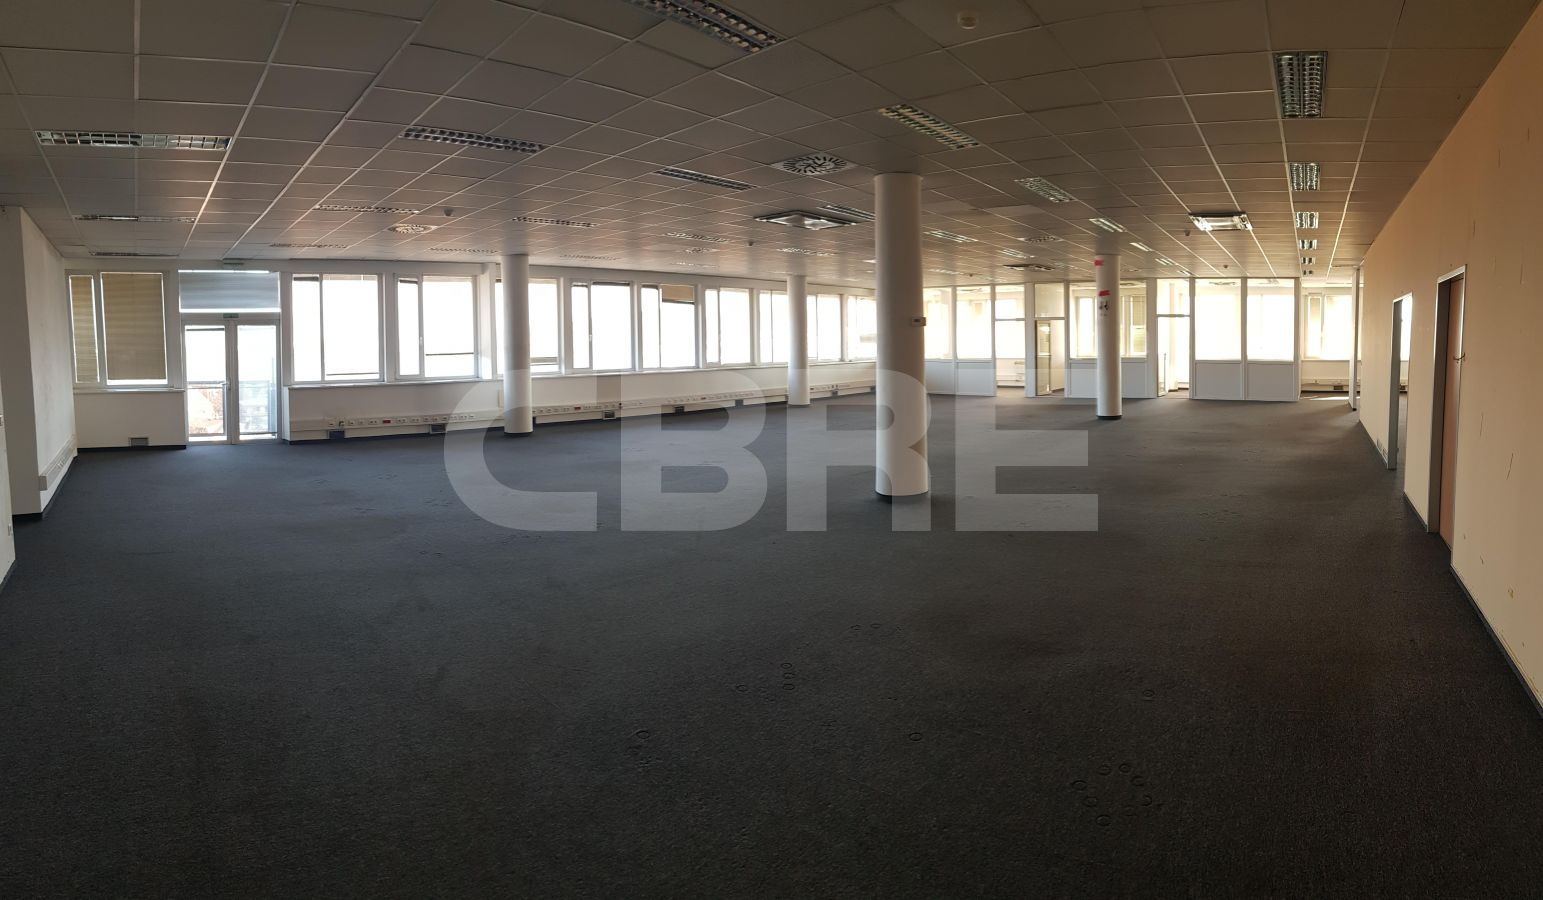 Business Center Žilina, Žilina | Offices for rent by CBRE | 1